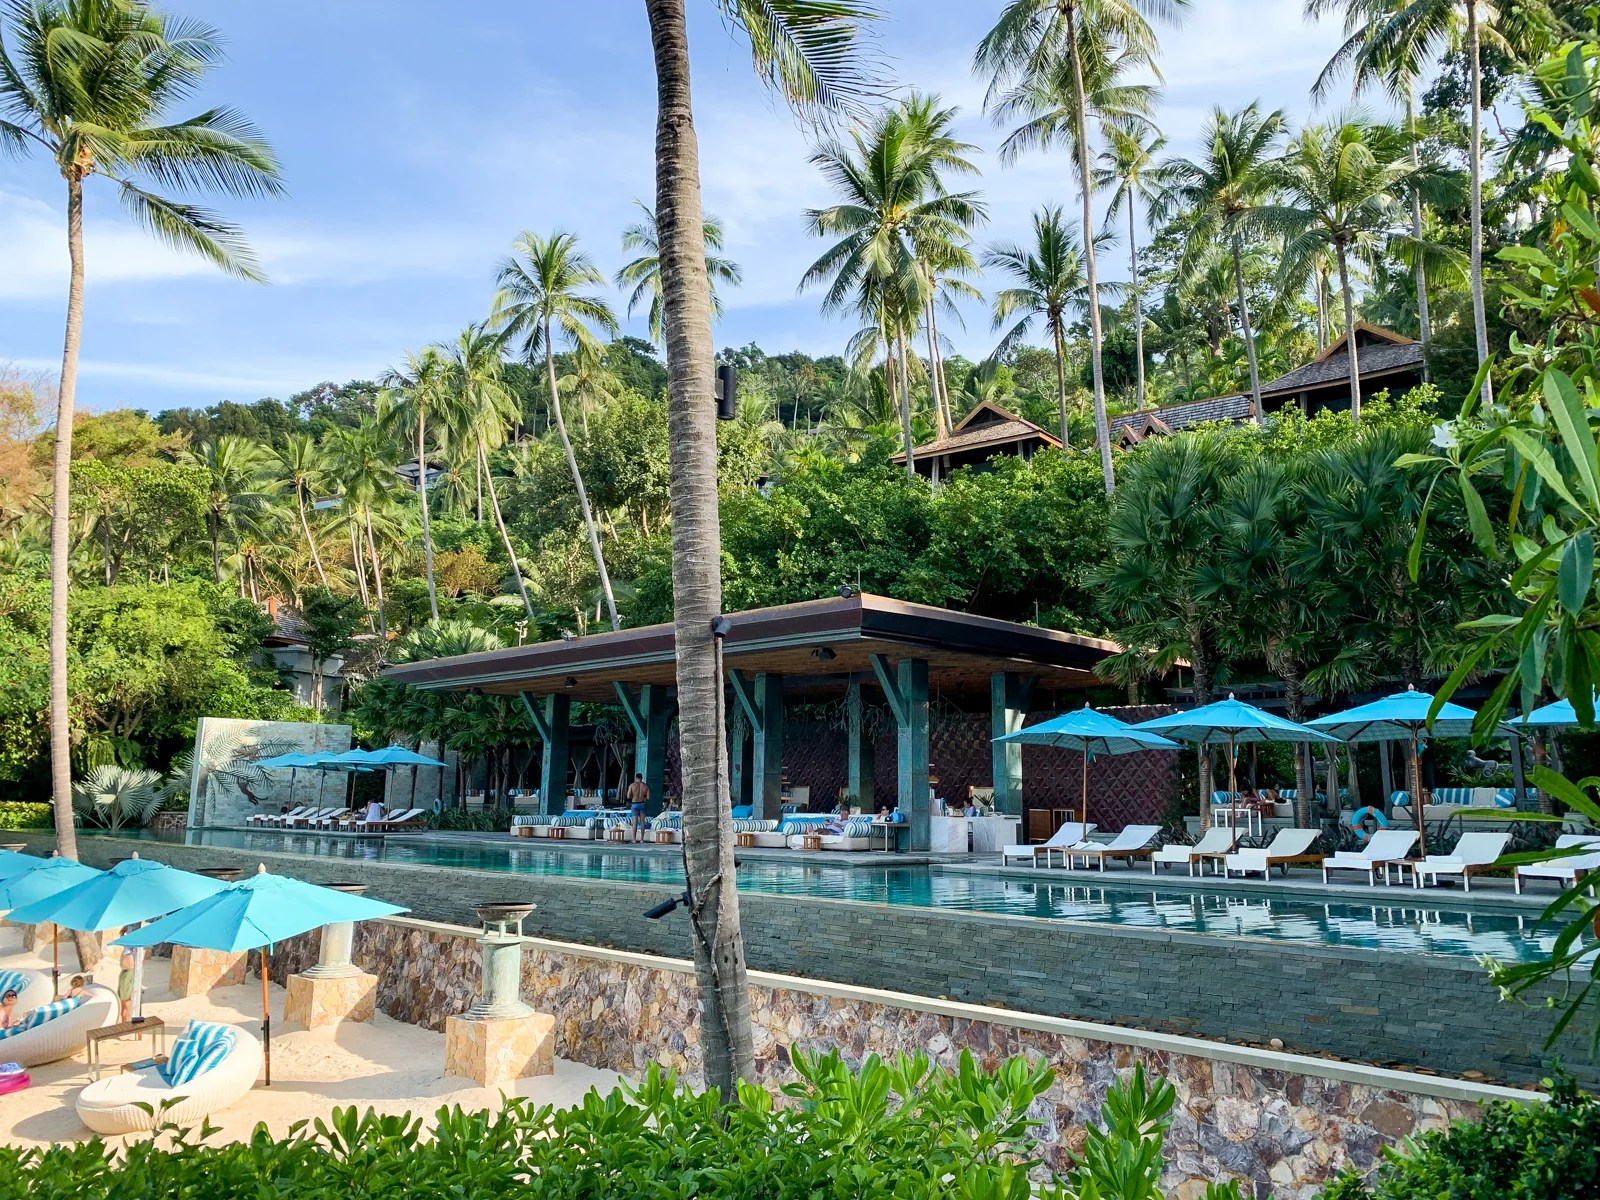 A Review of The Four Seasons Koh Samui Resort